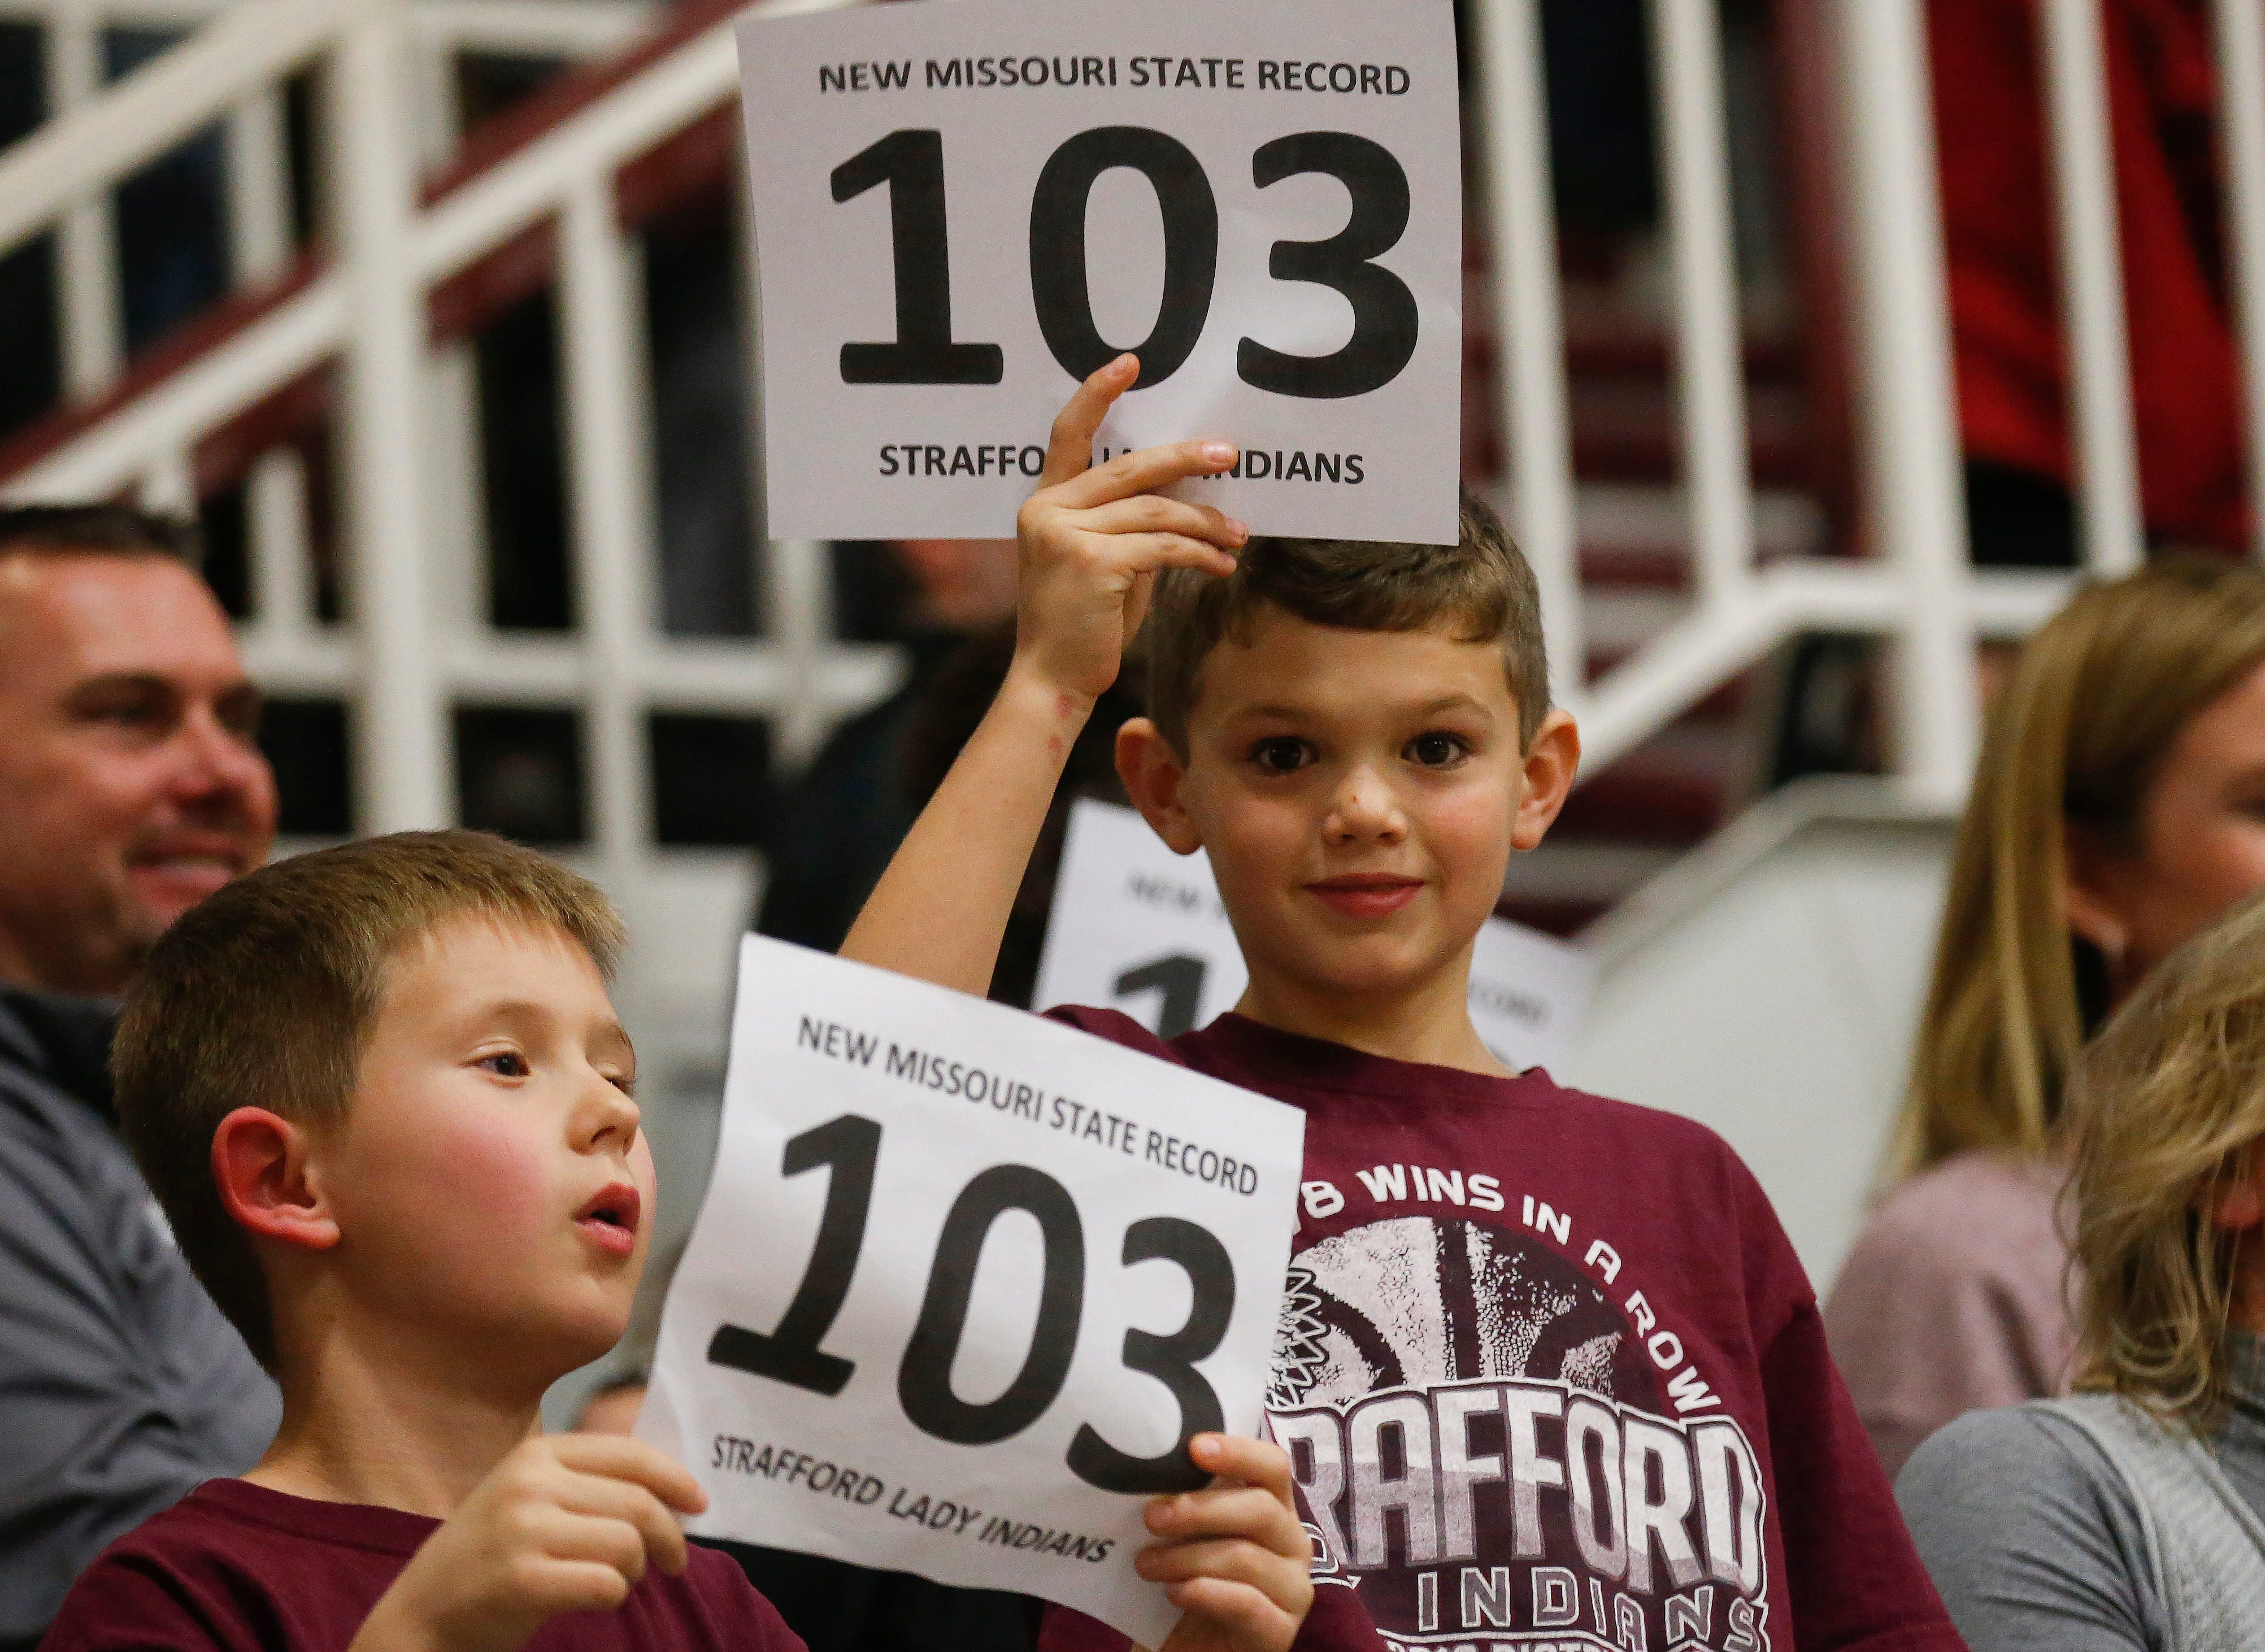 Scenes from Strafford's record setting win against Republic at Strafford High School on Thursday, Jan. 24, 2019.